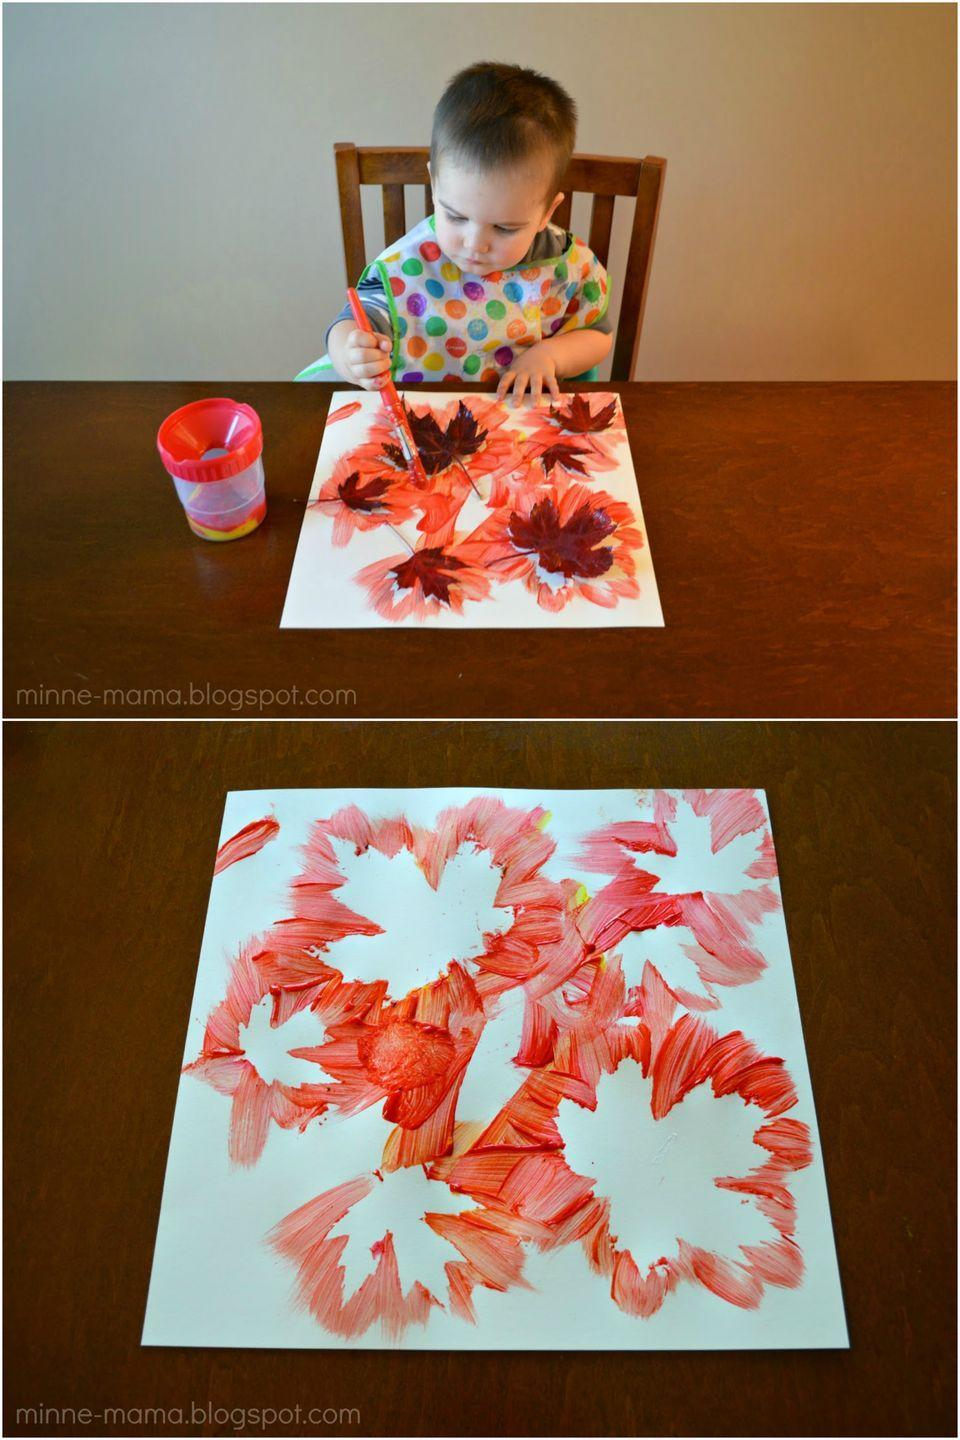 """<p>Paint around leaves to create negative space when you peel them away. Plus, it's an excuse to get your kids out of the house to fetch supplies. </p><p><em><a href=""""http://minne-mama.blogspot.com/2014/10/fall-leaf-painting.html?m=1"""" rel=""""nofollow noopener"""" target=""""_blank"""" data-ylk=""""slk:Get the tutorial at Minne Mama »"""" class=""""link rapid-noclick-resp"""">Get the tutorial at Minne Mama »</a></em> </p>"""